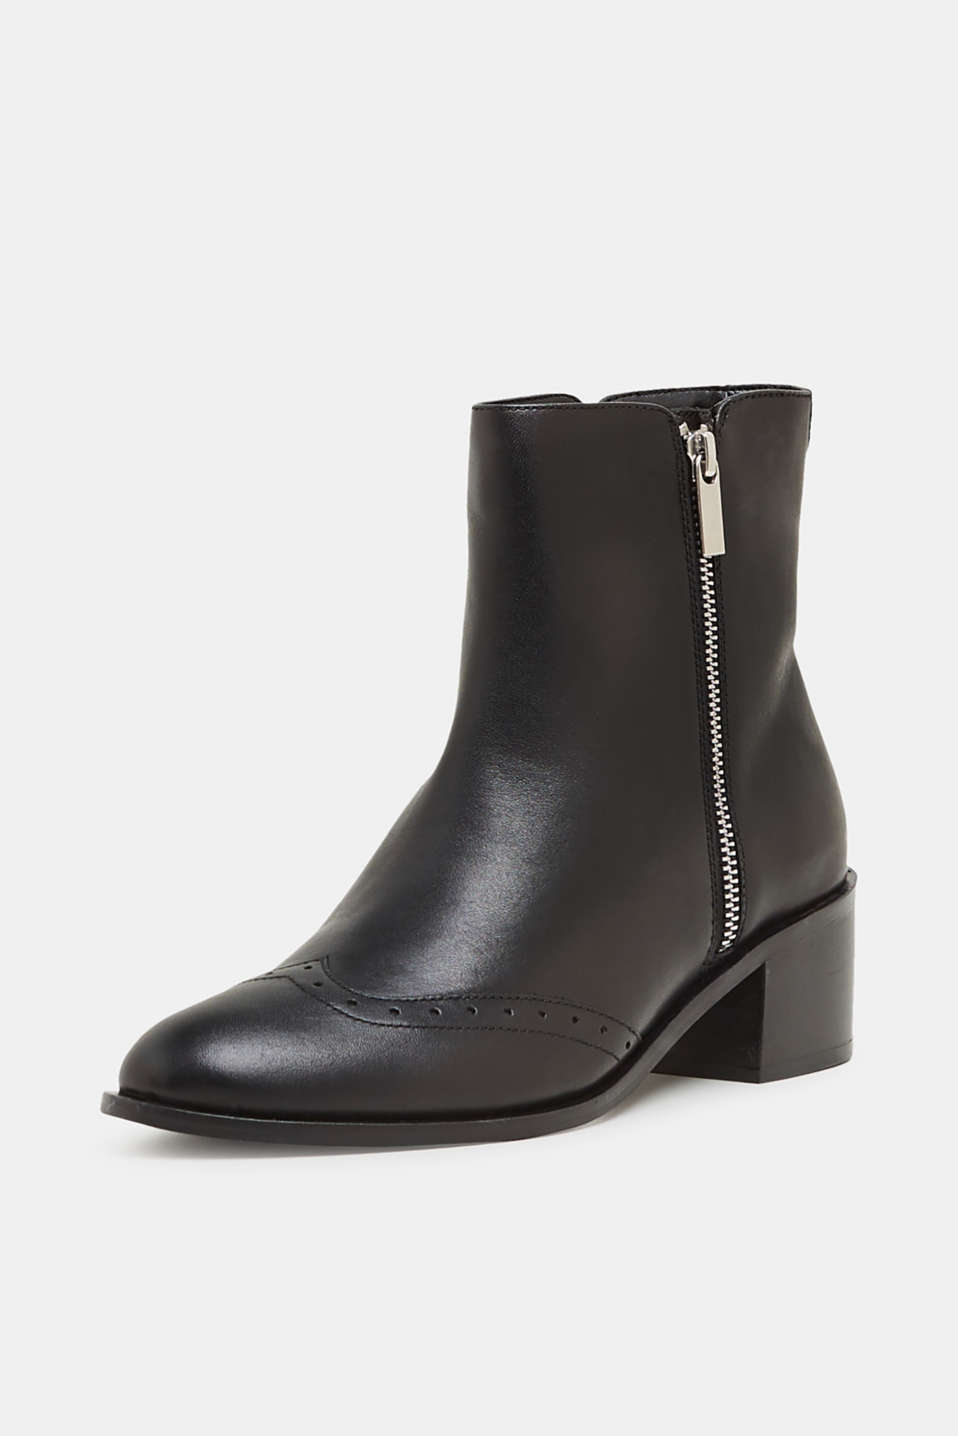 Boots with a brogue pattern, made of leather, BLACK, detail image number 1